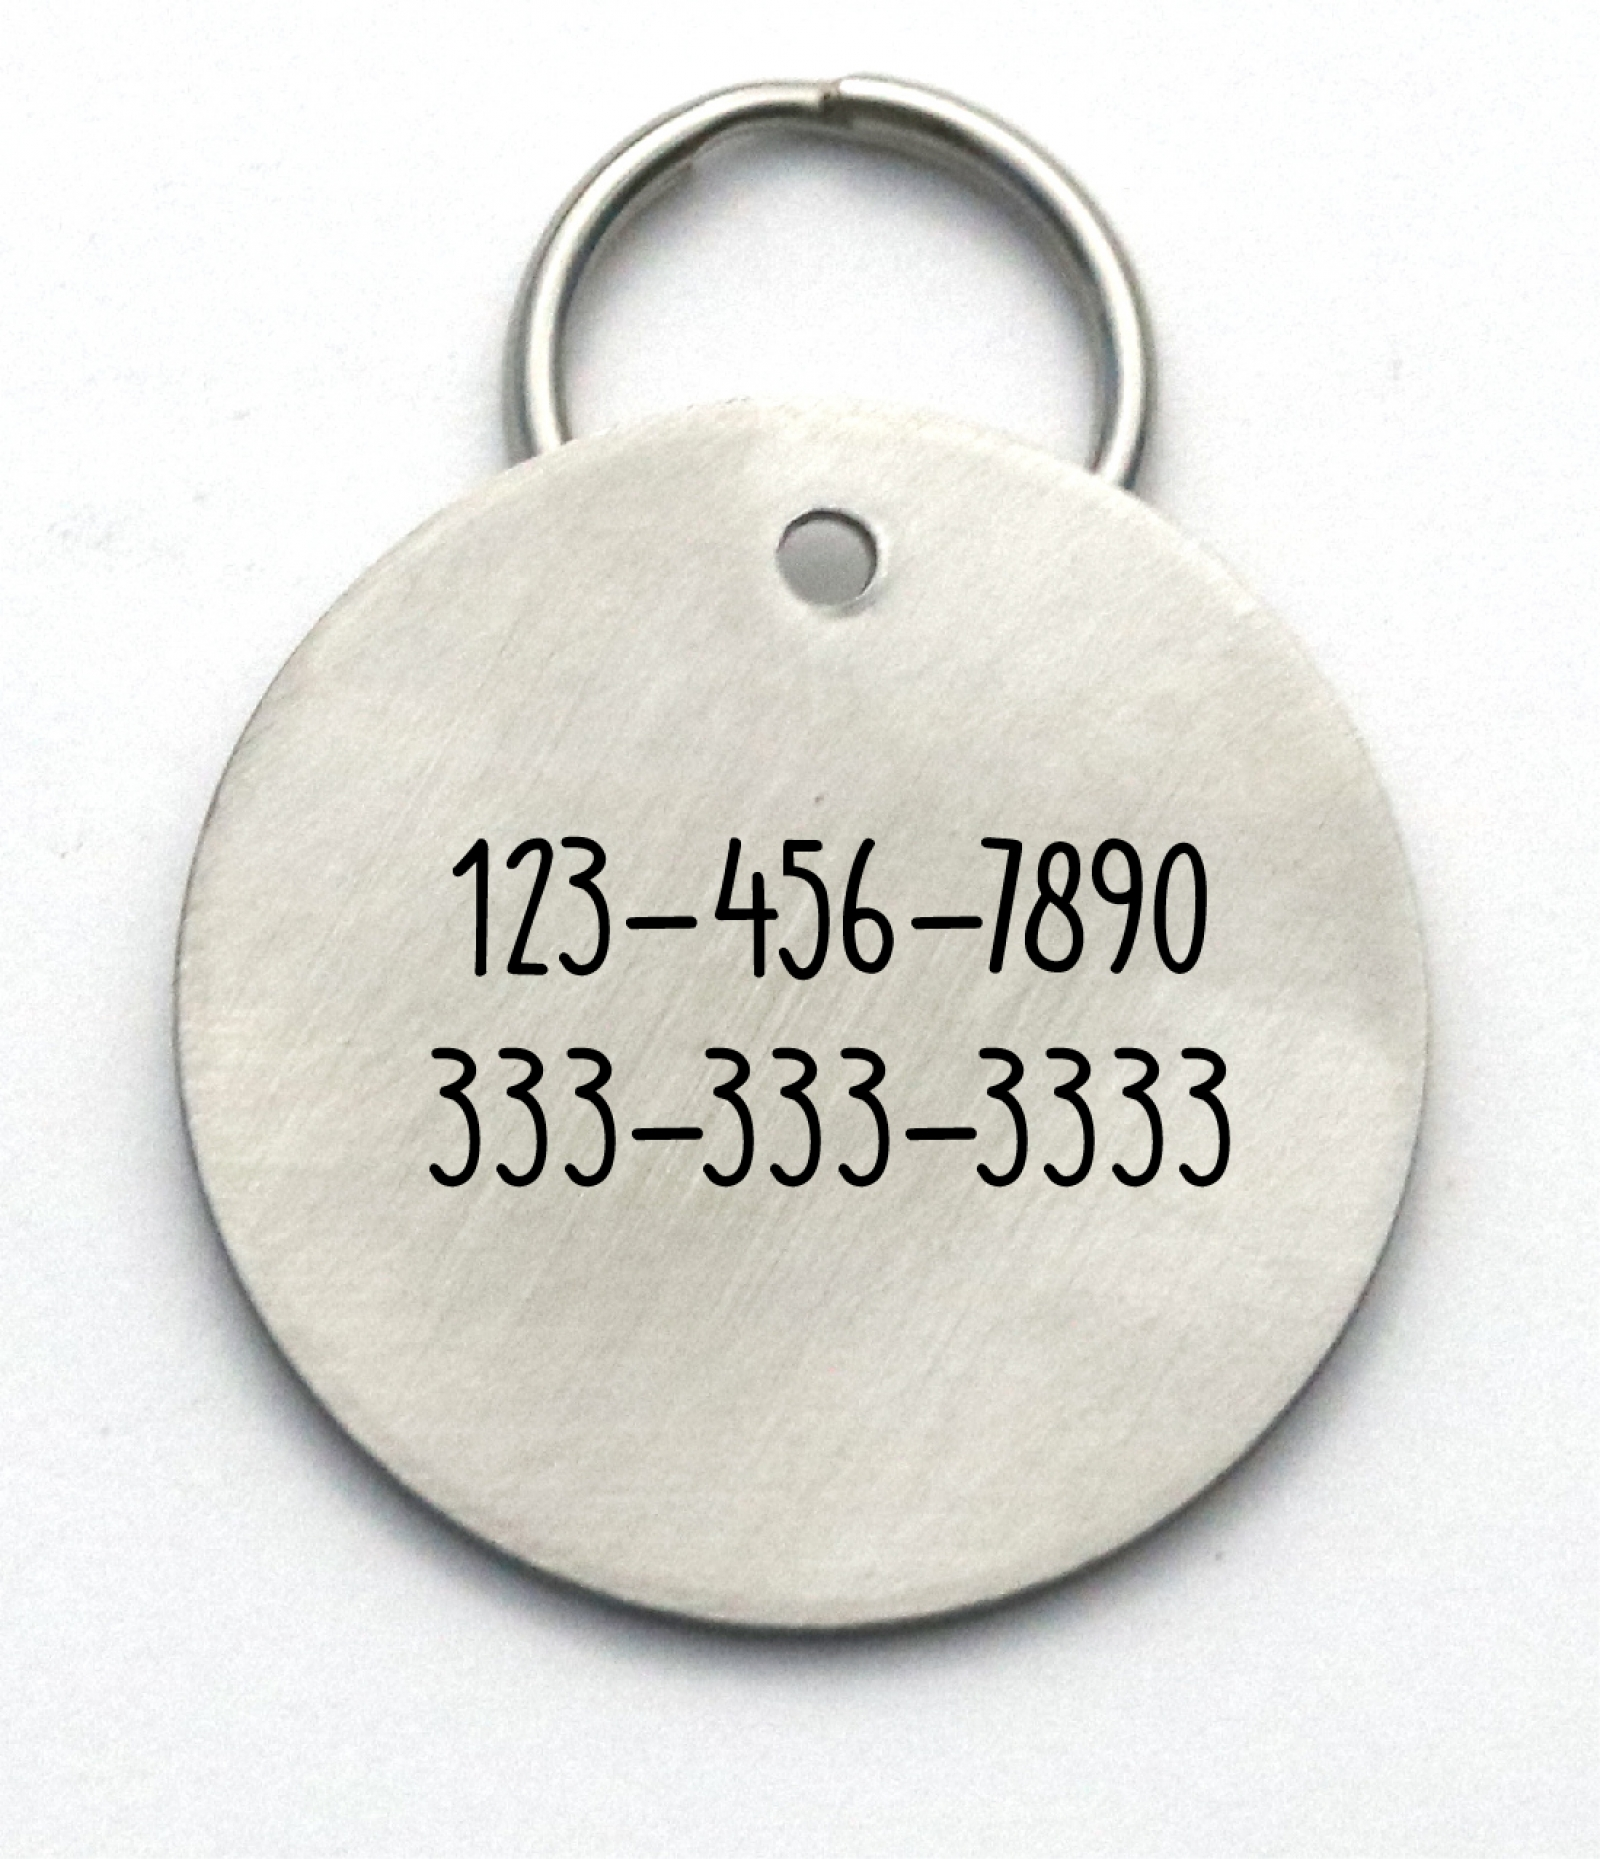 Phone Number On Dog Tag Canada